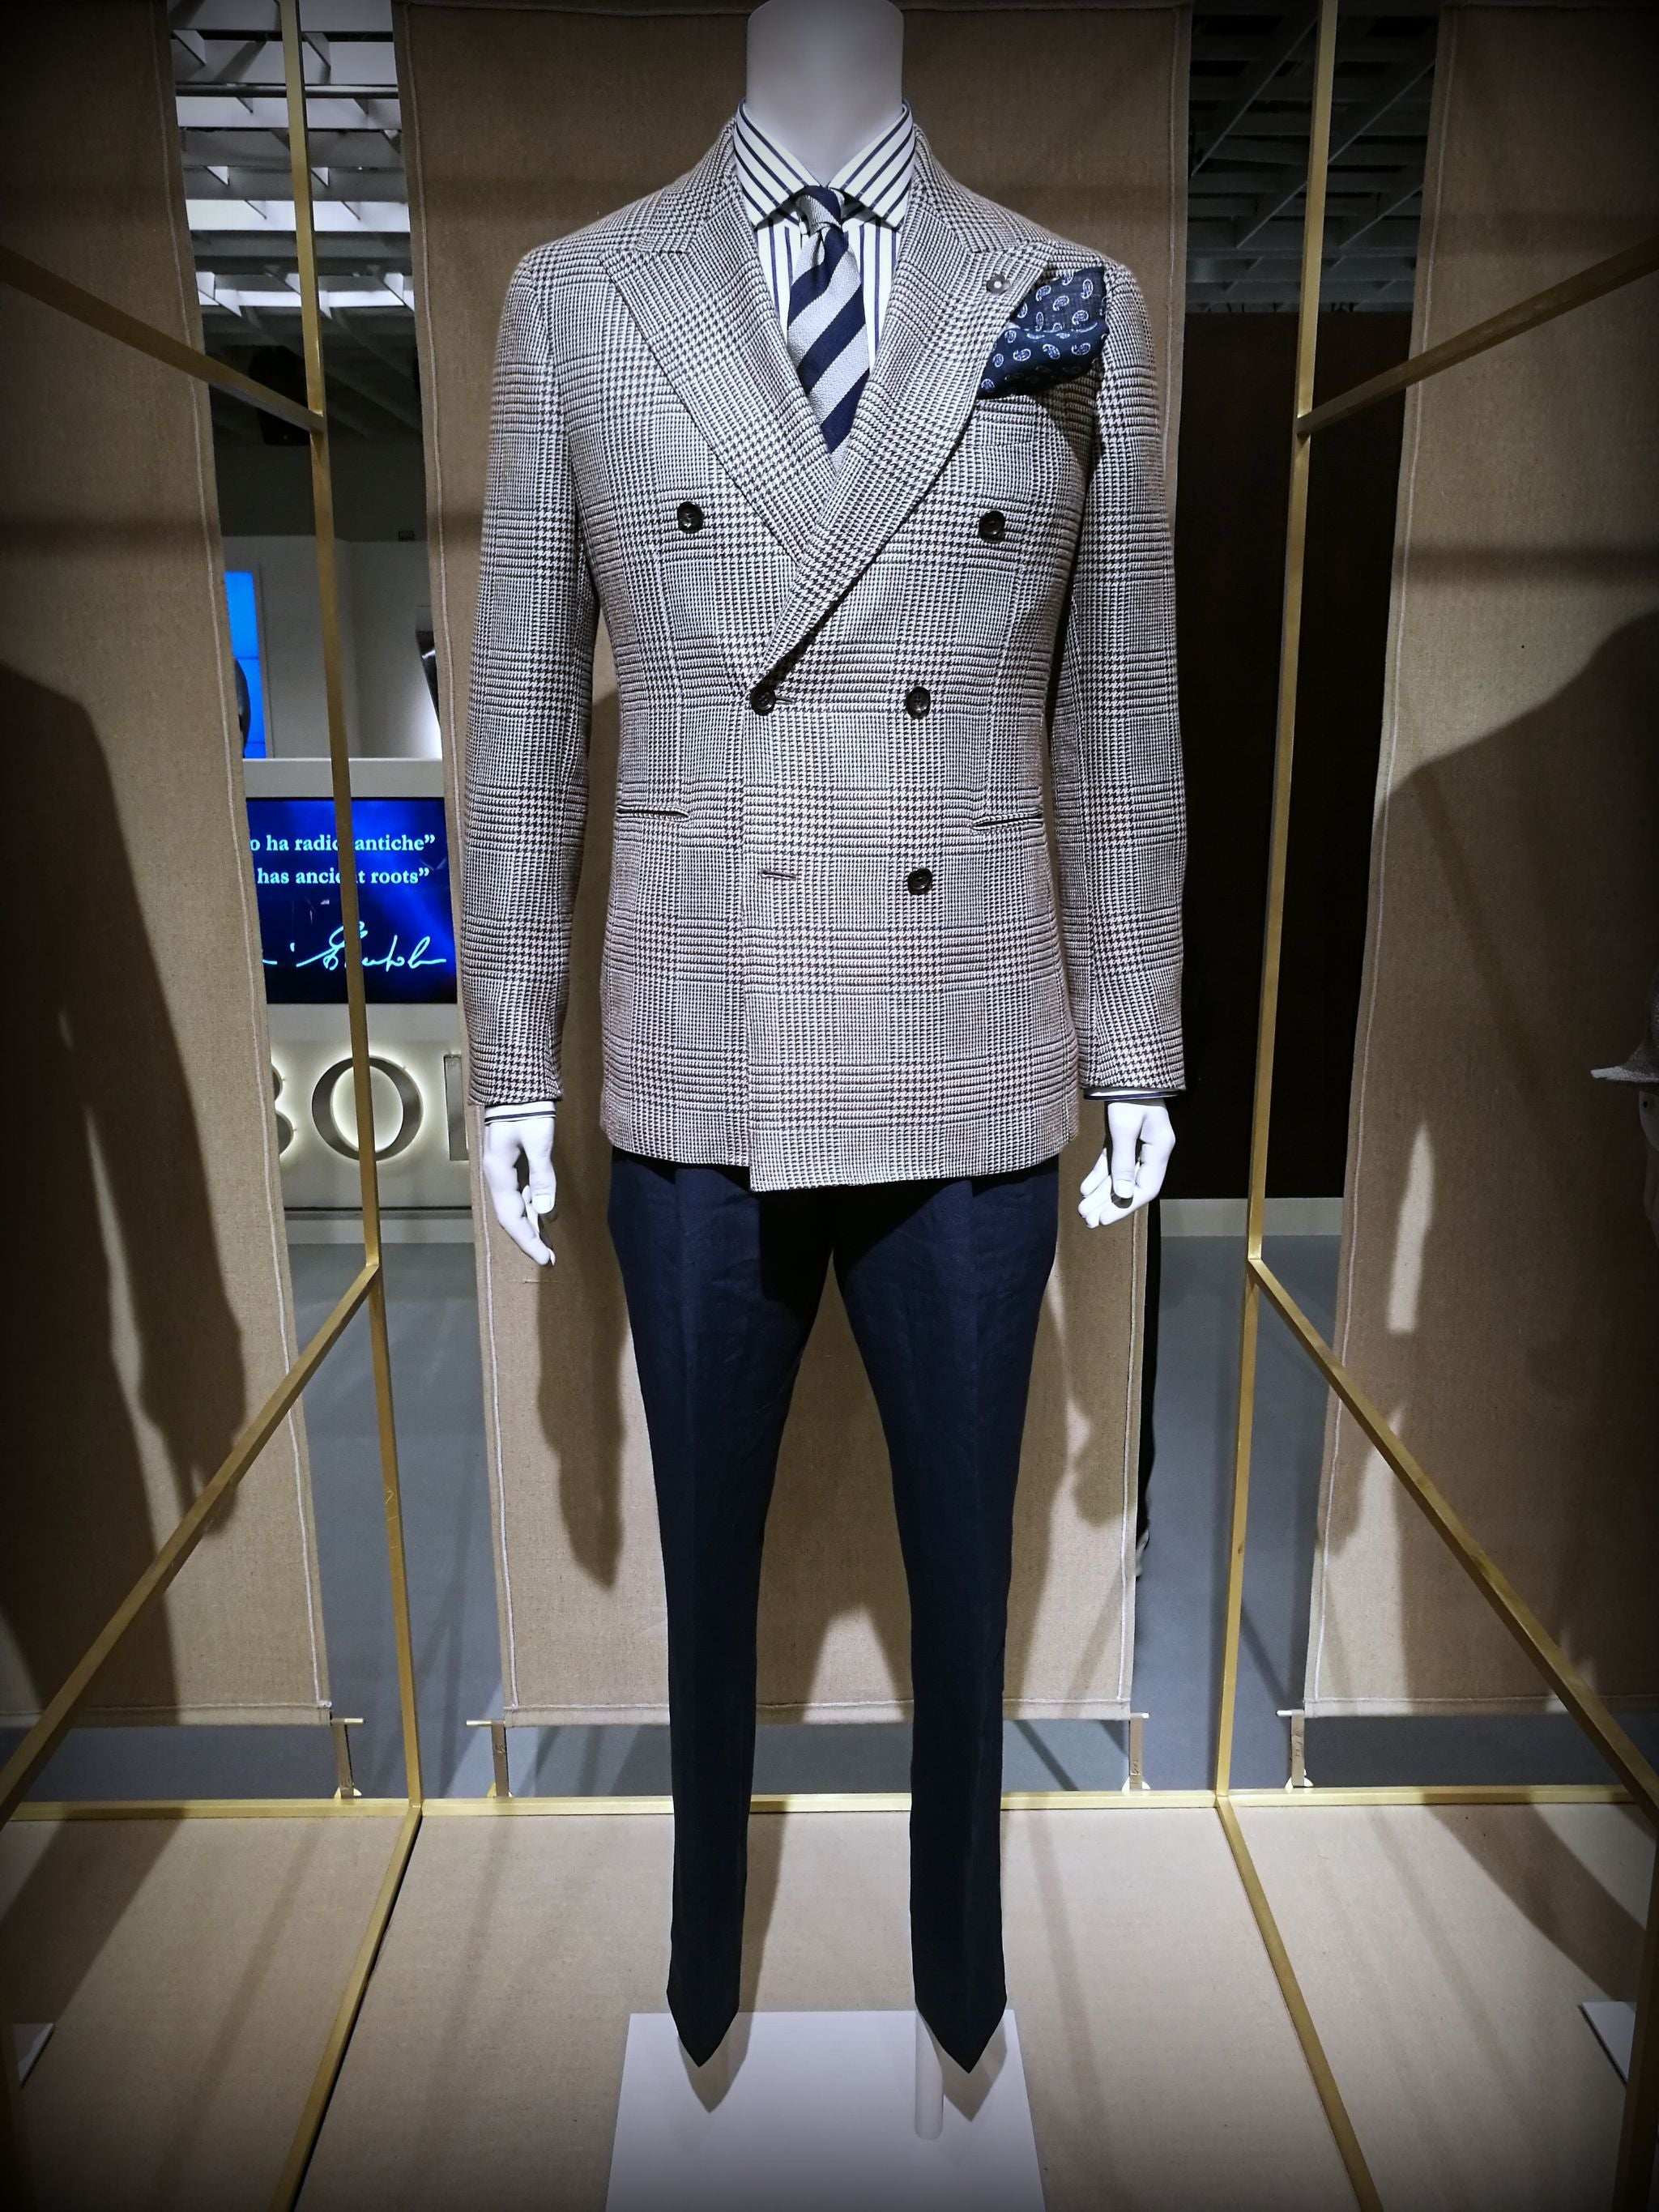 Pitti Uomo 90 - Double-breasted blazer with blue trousers by Lardini